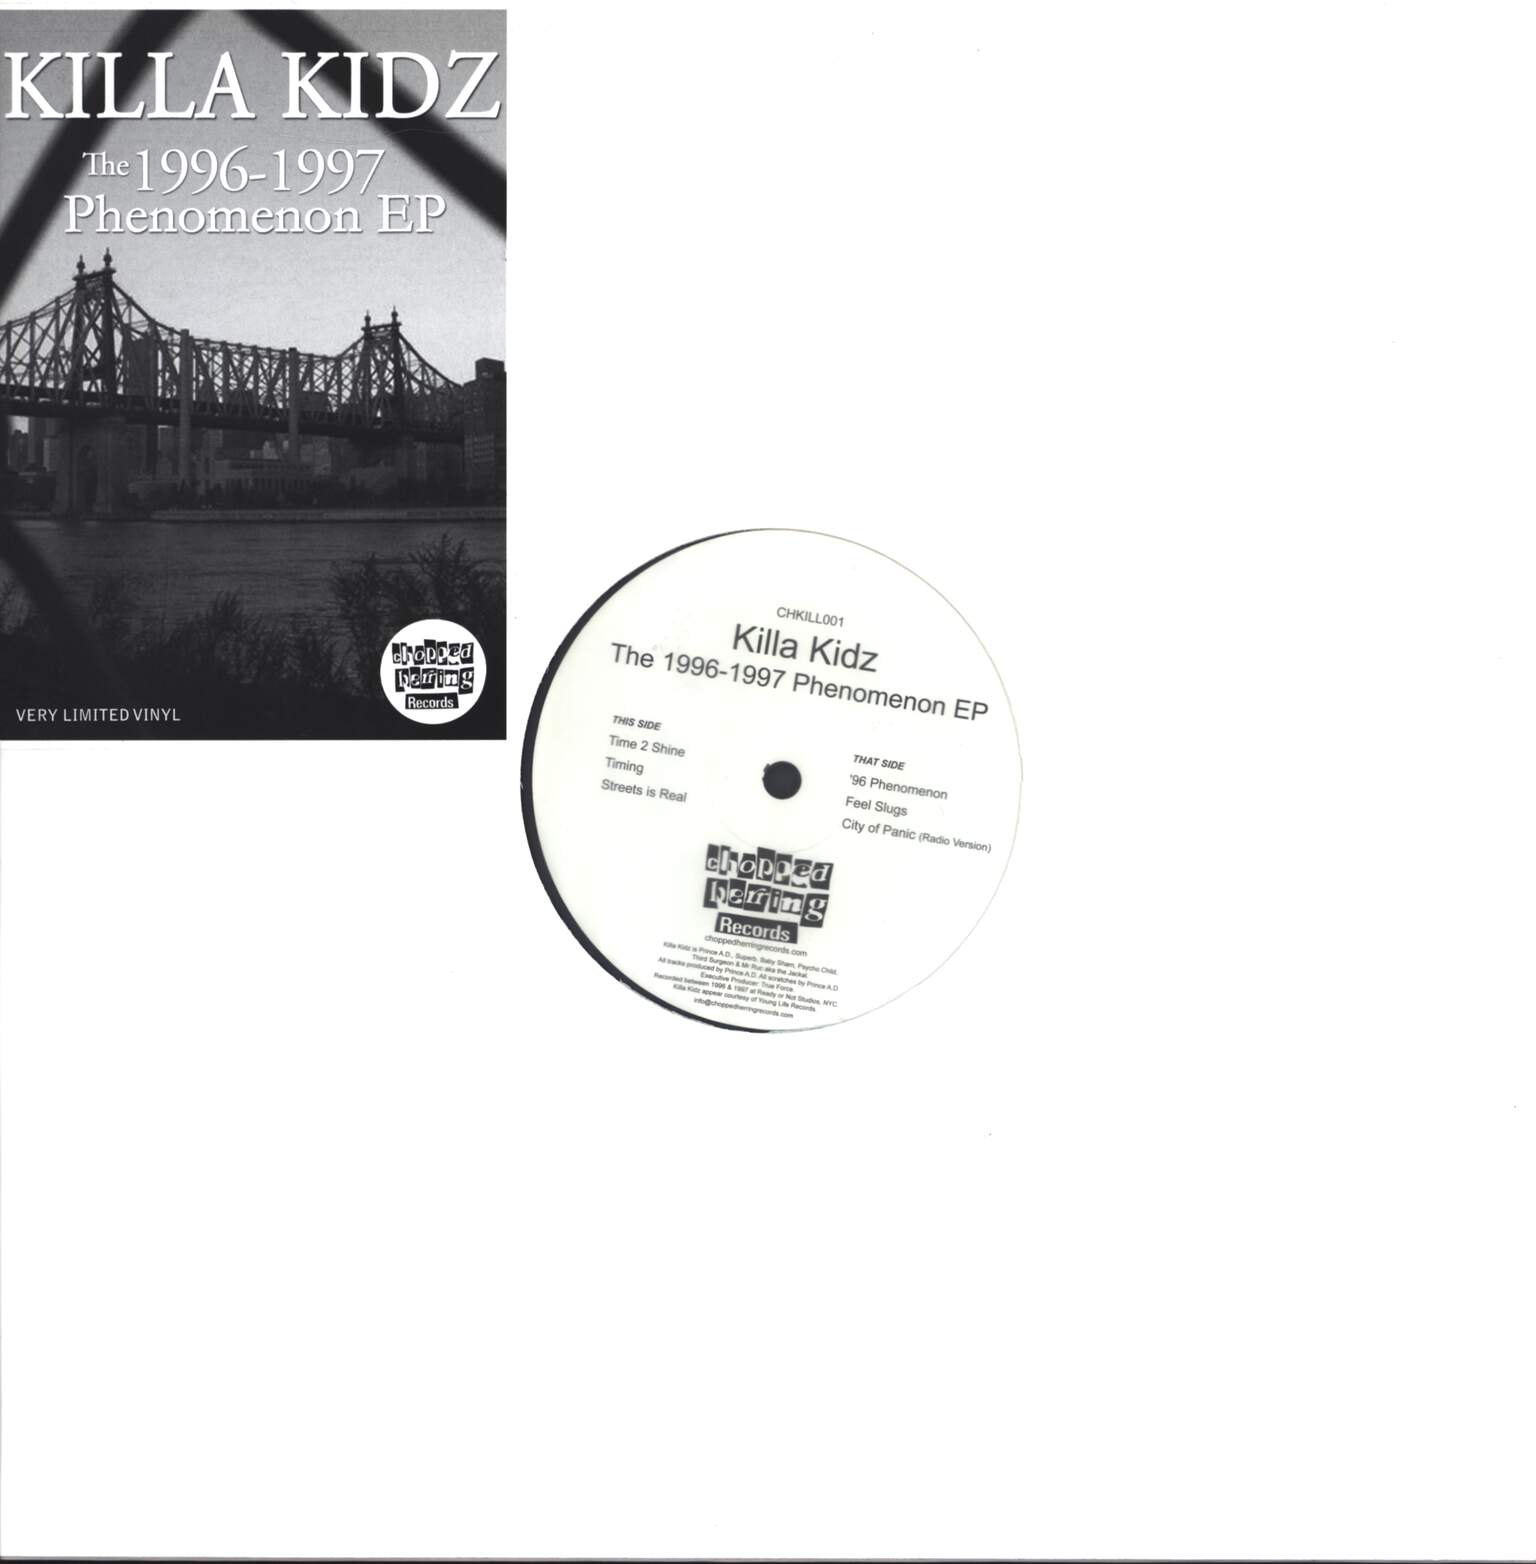 "Killa Kidz: The 1996-1997 Phenomenon EP, 12"" Maxi Single (Vinyl)"